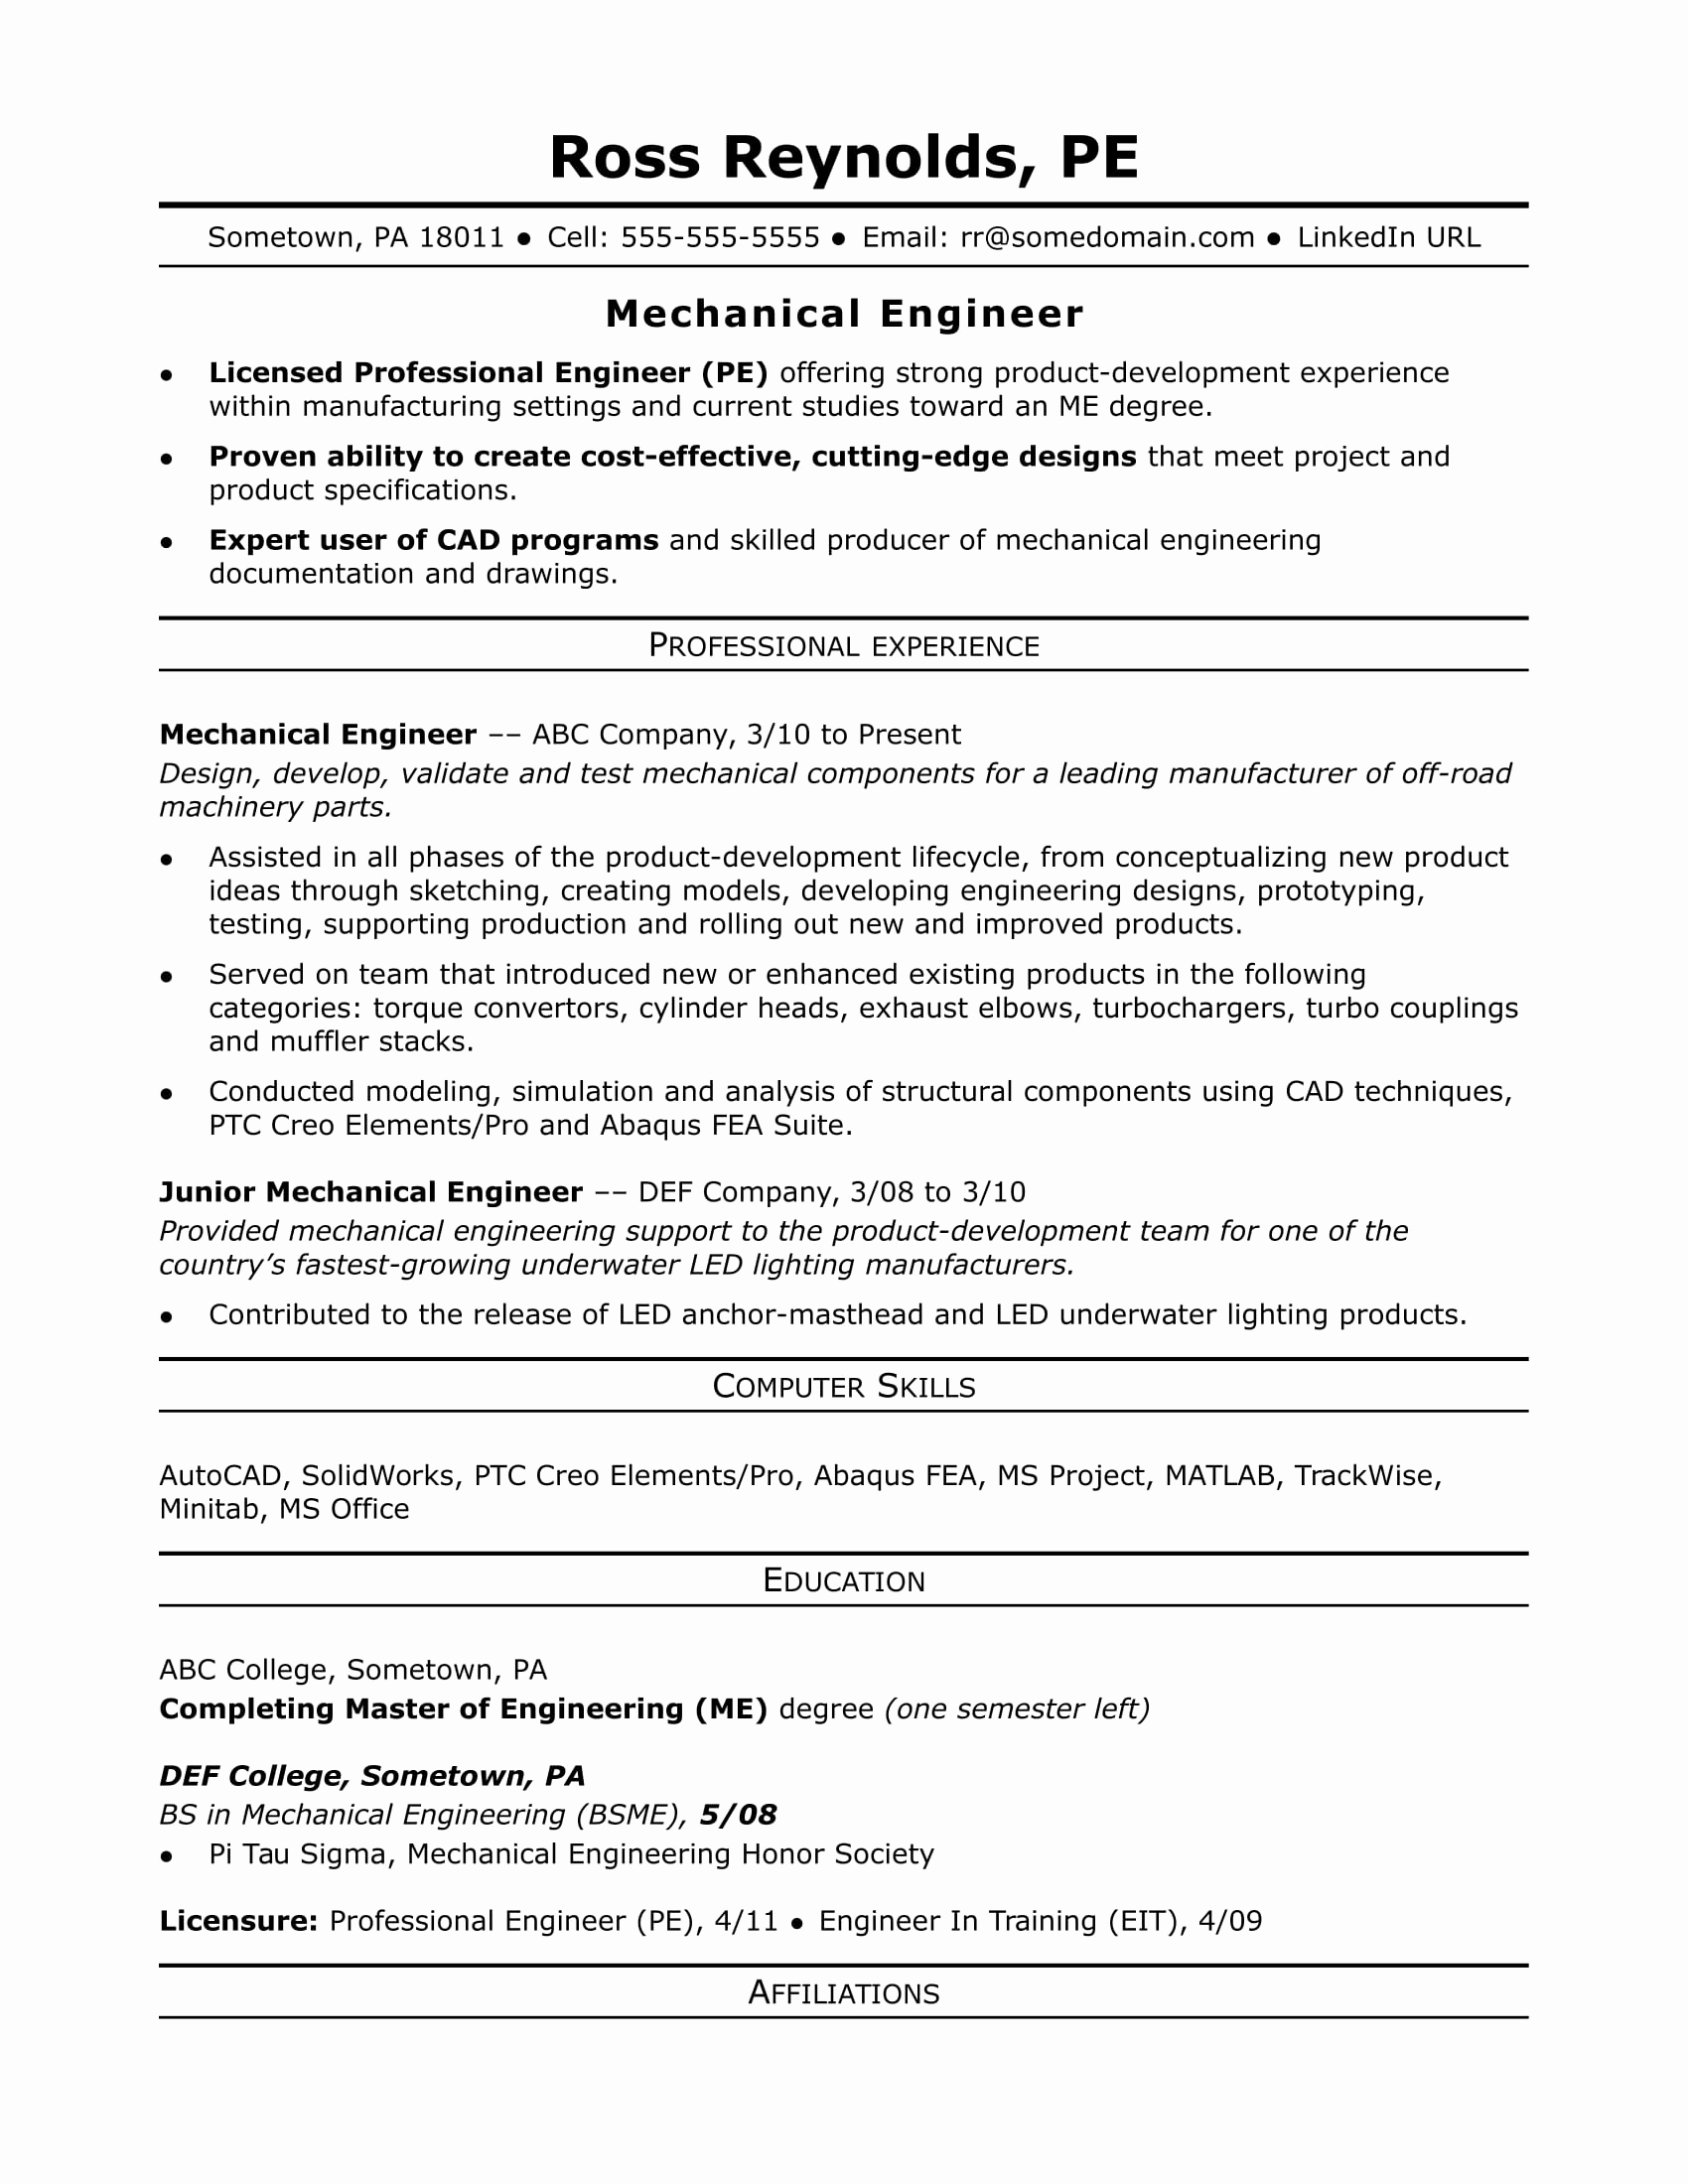 Mechanical Engineer Resume Sample Beautiful Sample Resume for A Midlevel Mechanical Engineer